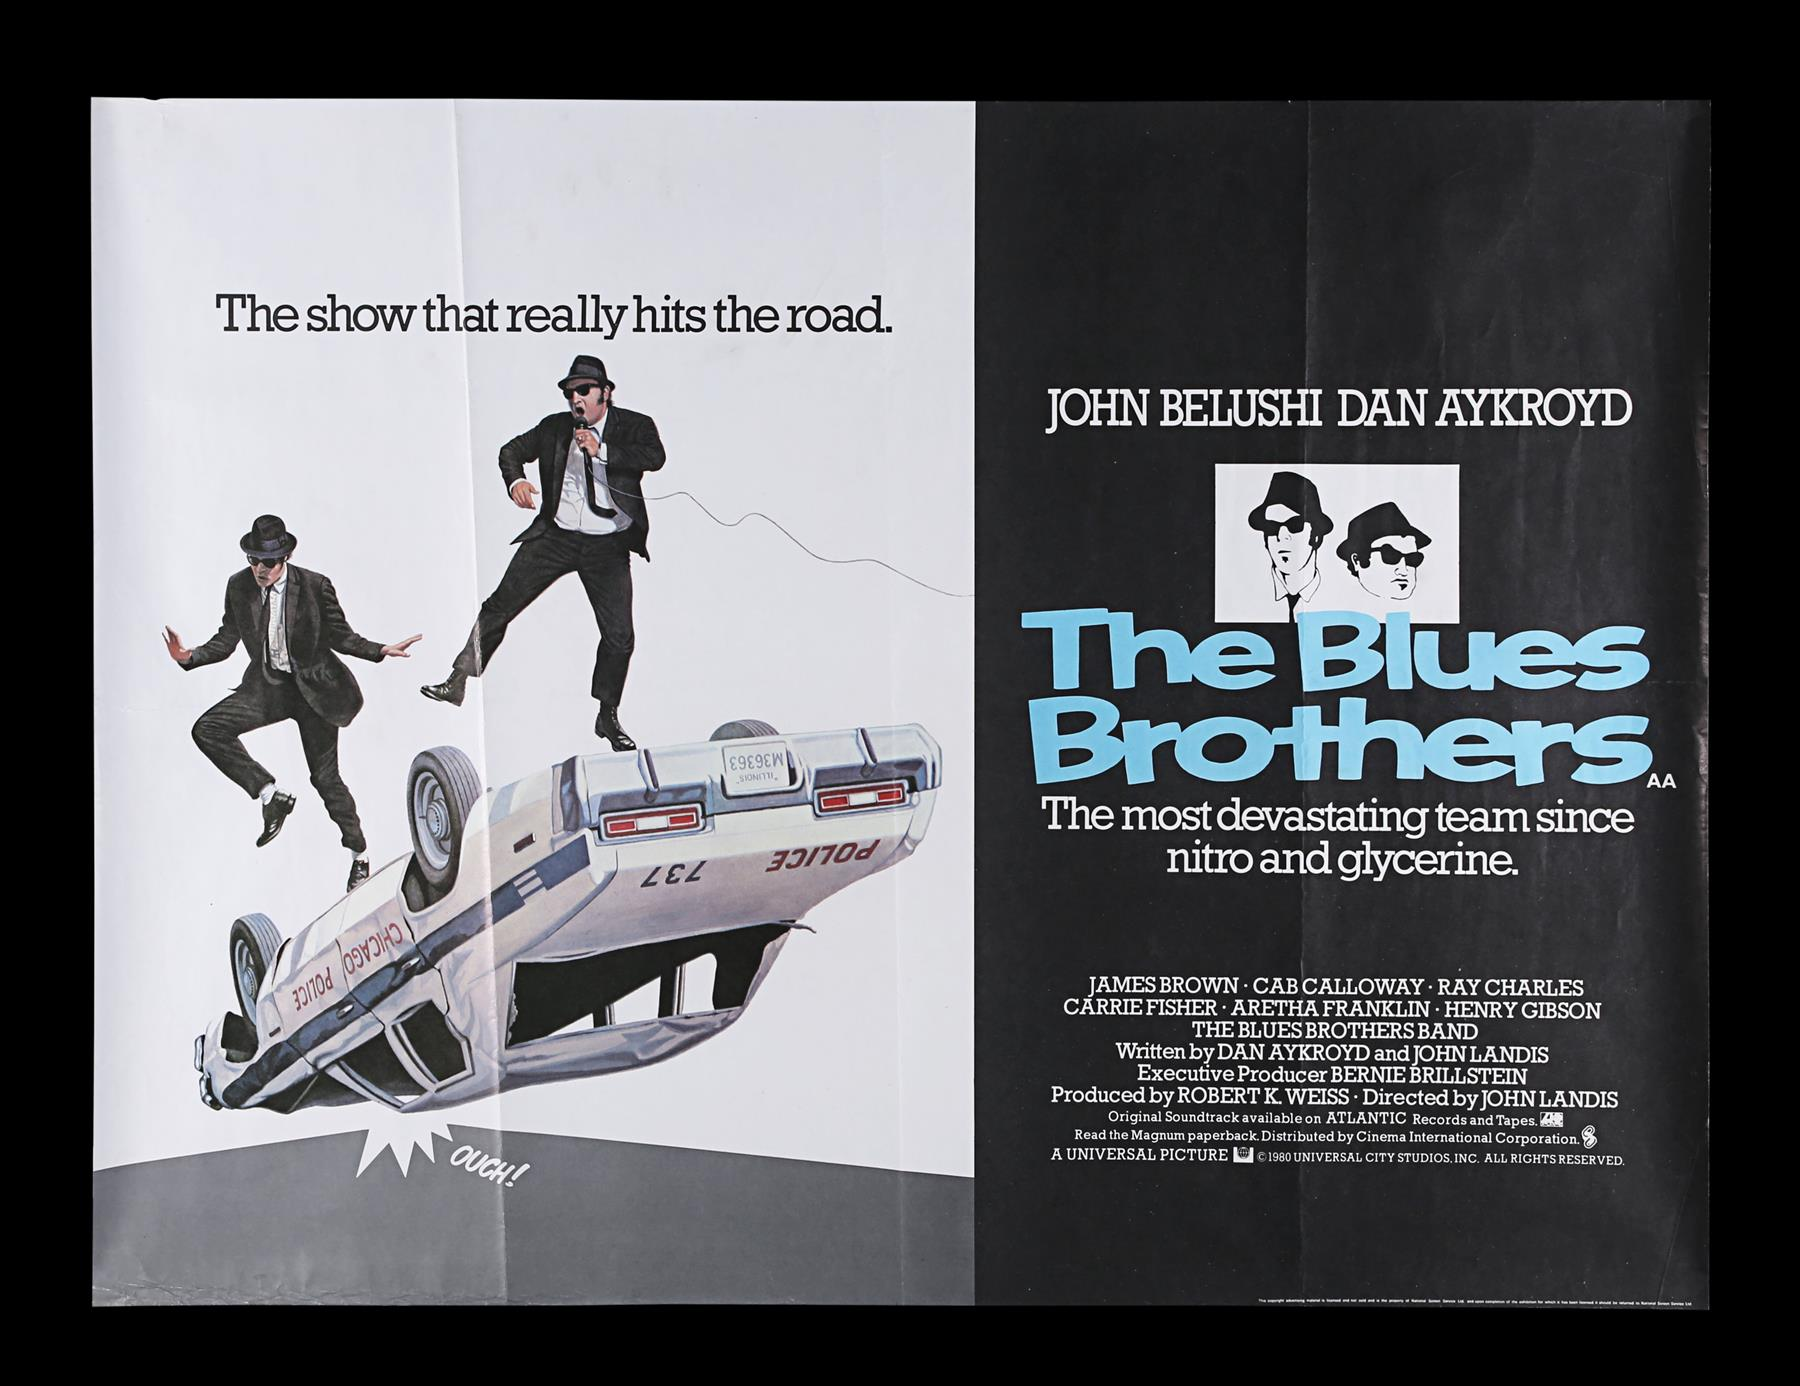 THE BLUES BROTHERS (1980) - UK Quad, 1980